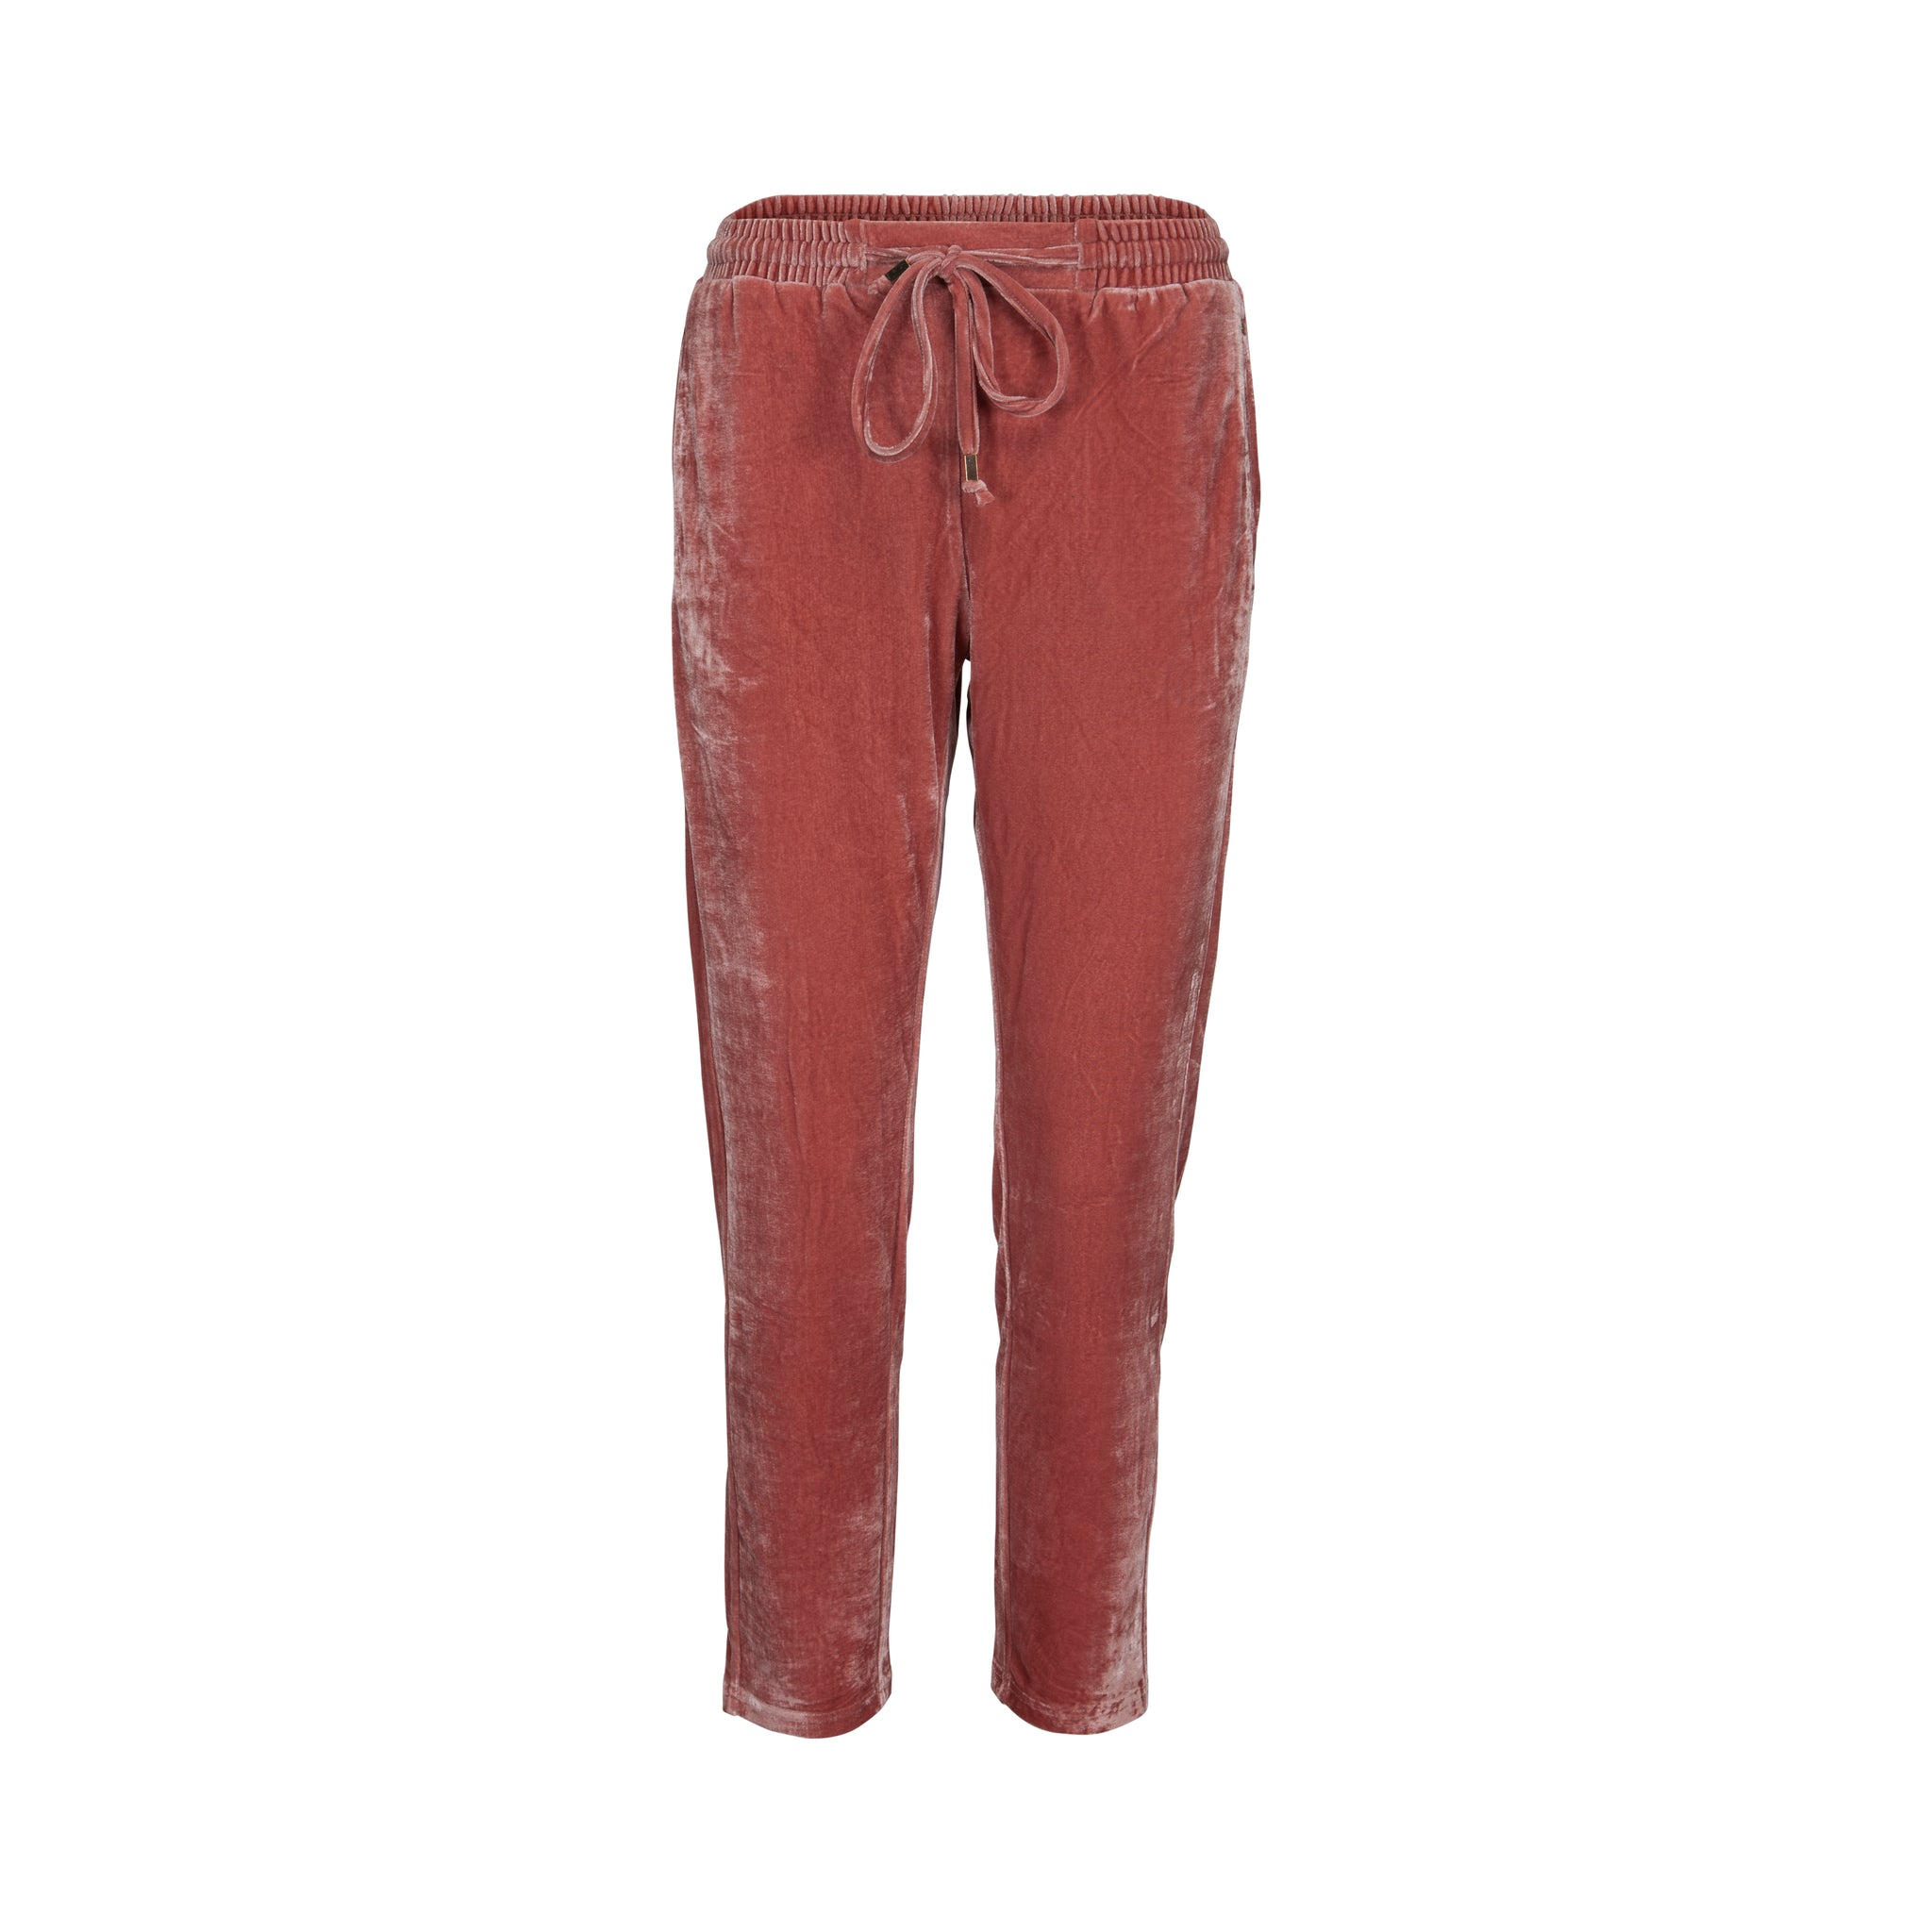 Womens Sofie Schnoor Pants - Old Rose